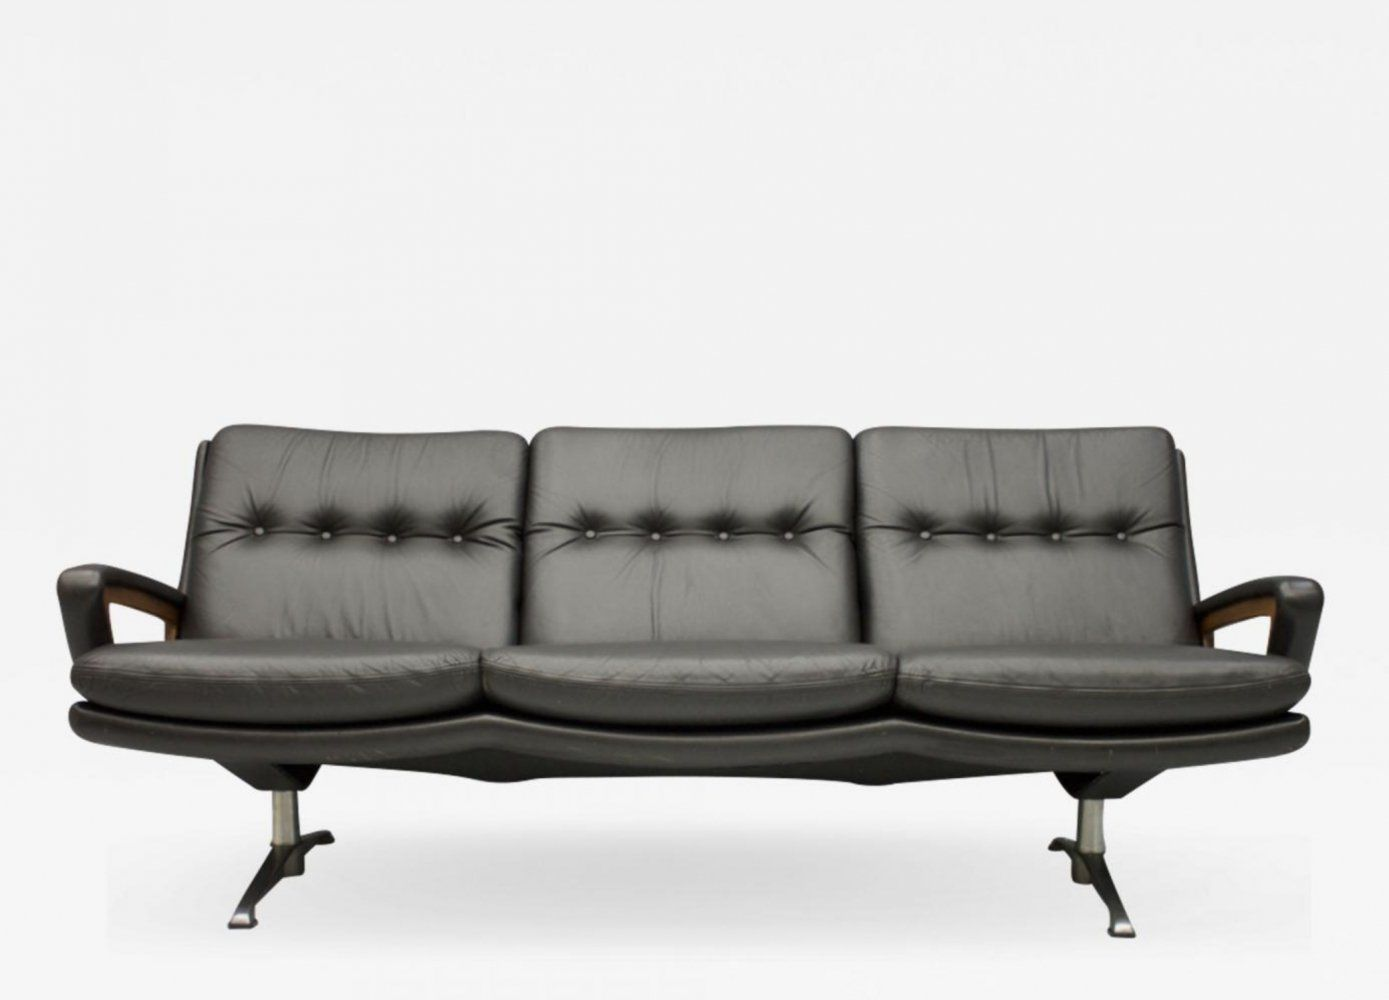 For Sale Dark Brown Leather Sofa By Carl Straub 1960s In 2020 Dark Brown Leather Sofa Brown Leather Sofa Dark Brown Leather